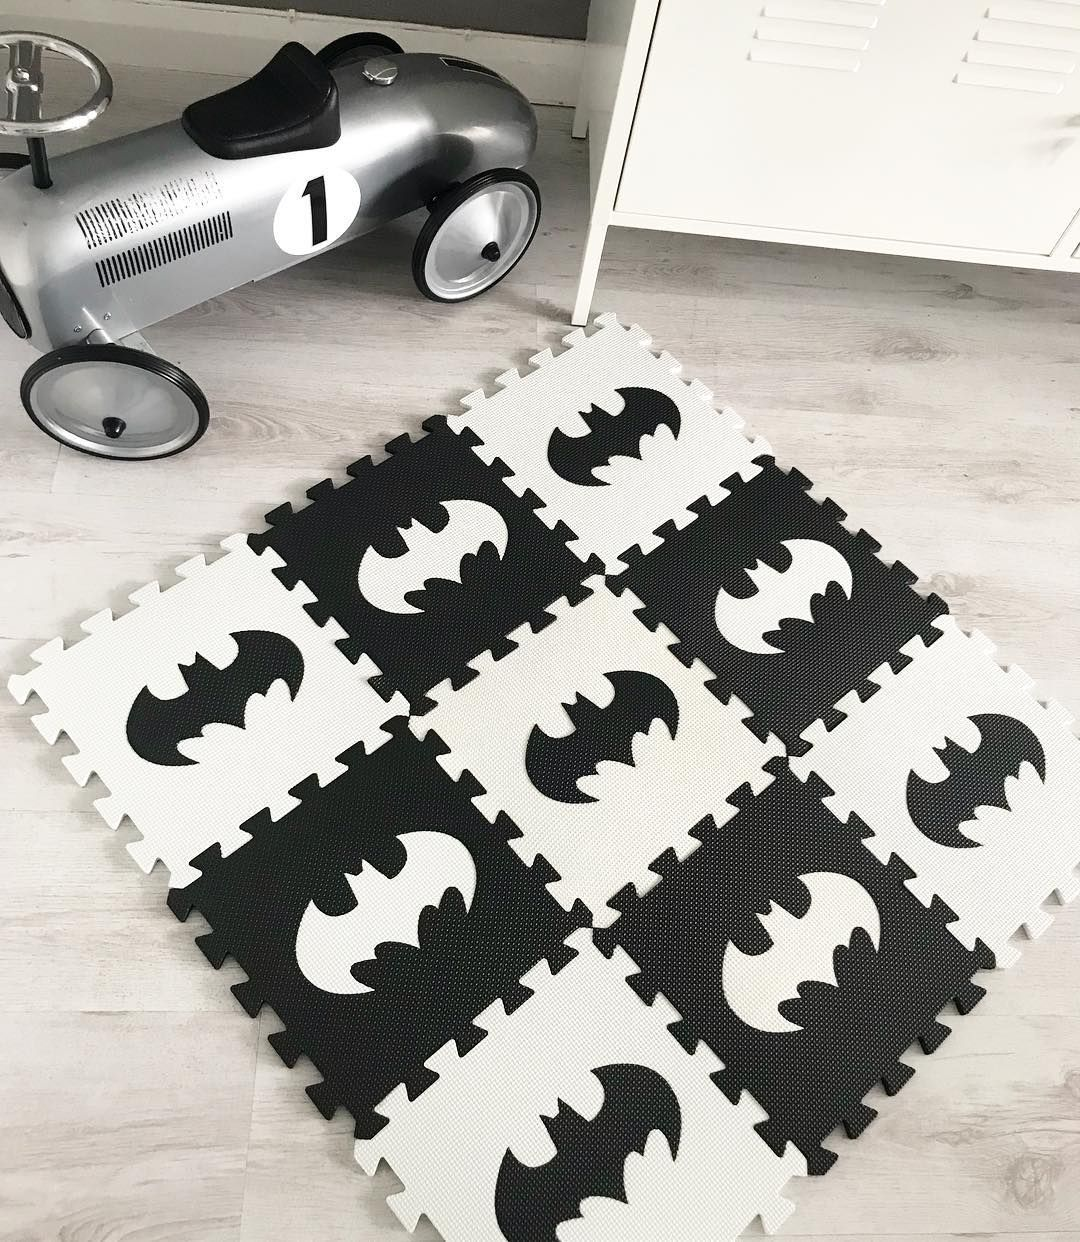 Batman Logo Mats 9pcs